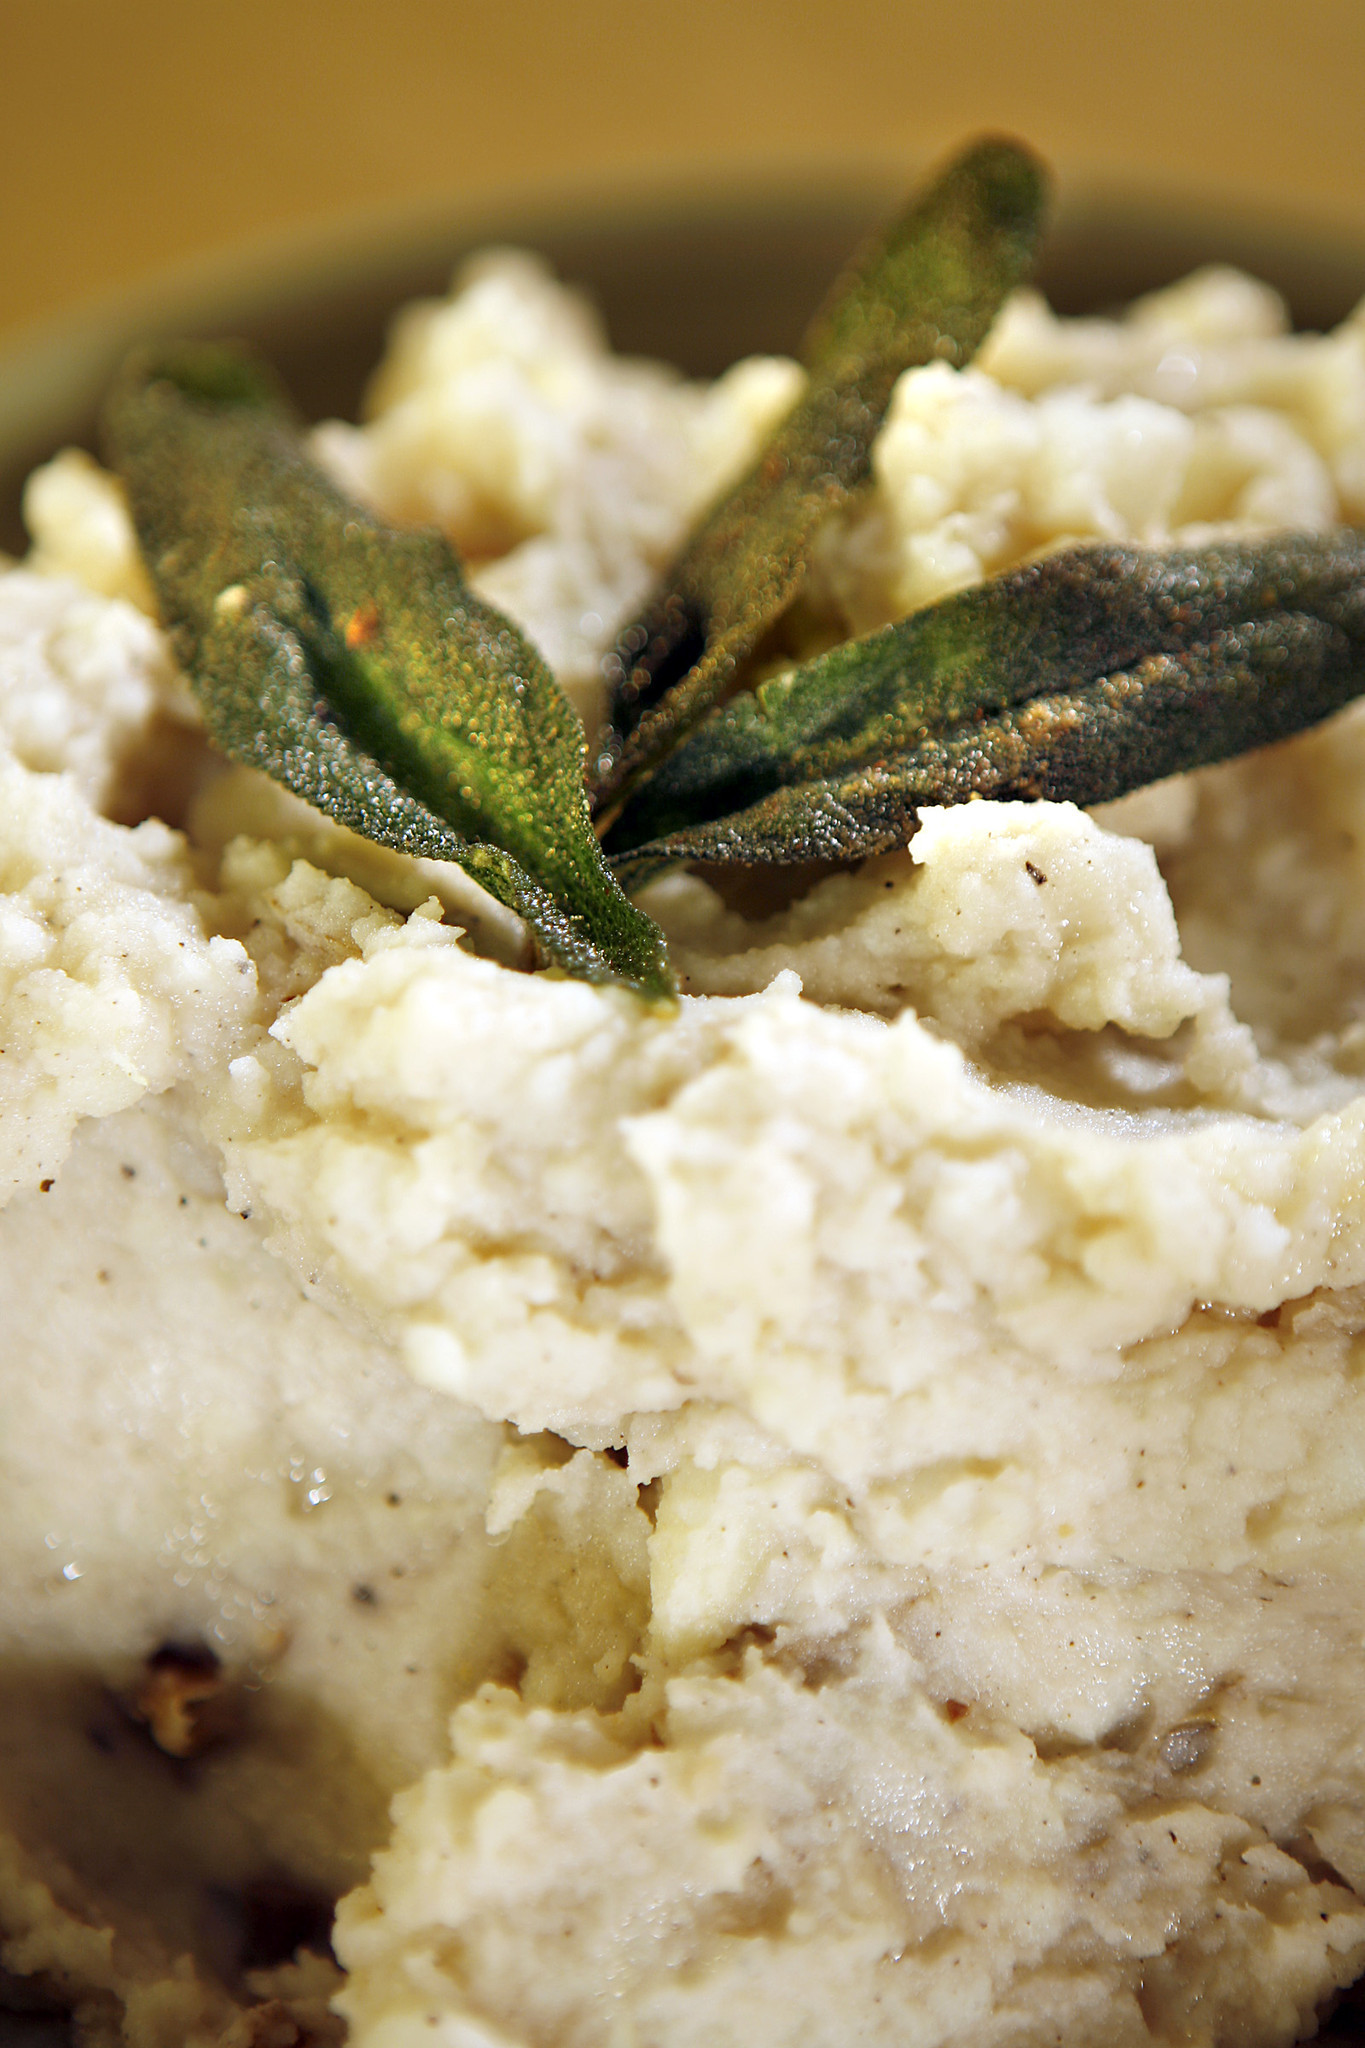 Photos: 97 great Thanksgiving recipes - Brown butter mashed potatoes with fried sage